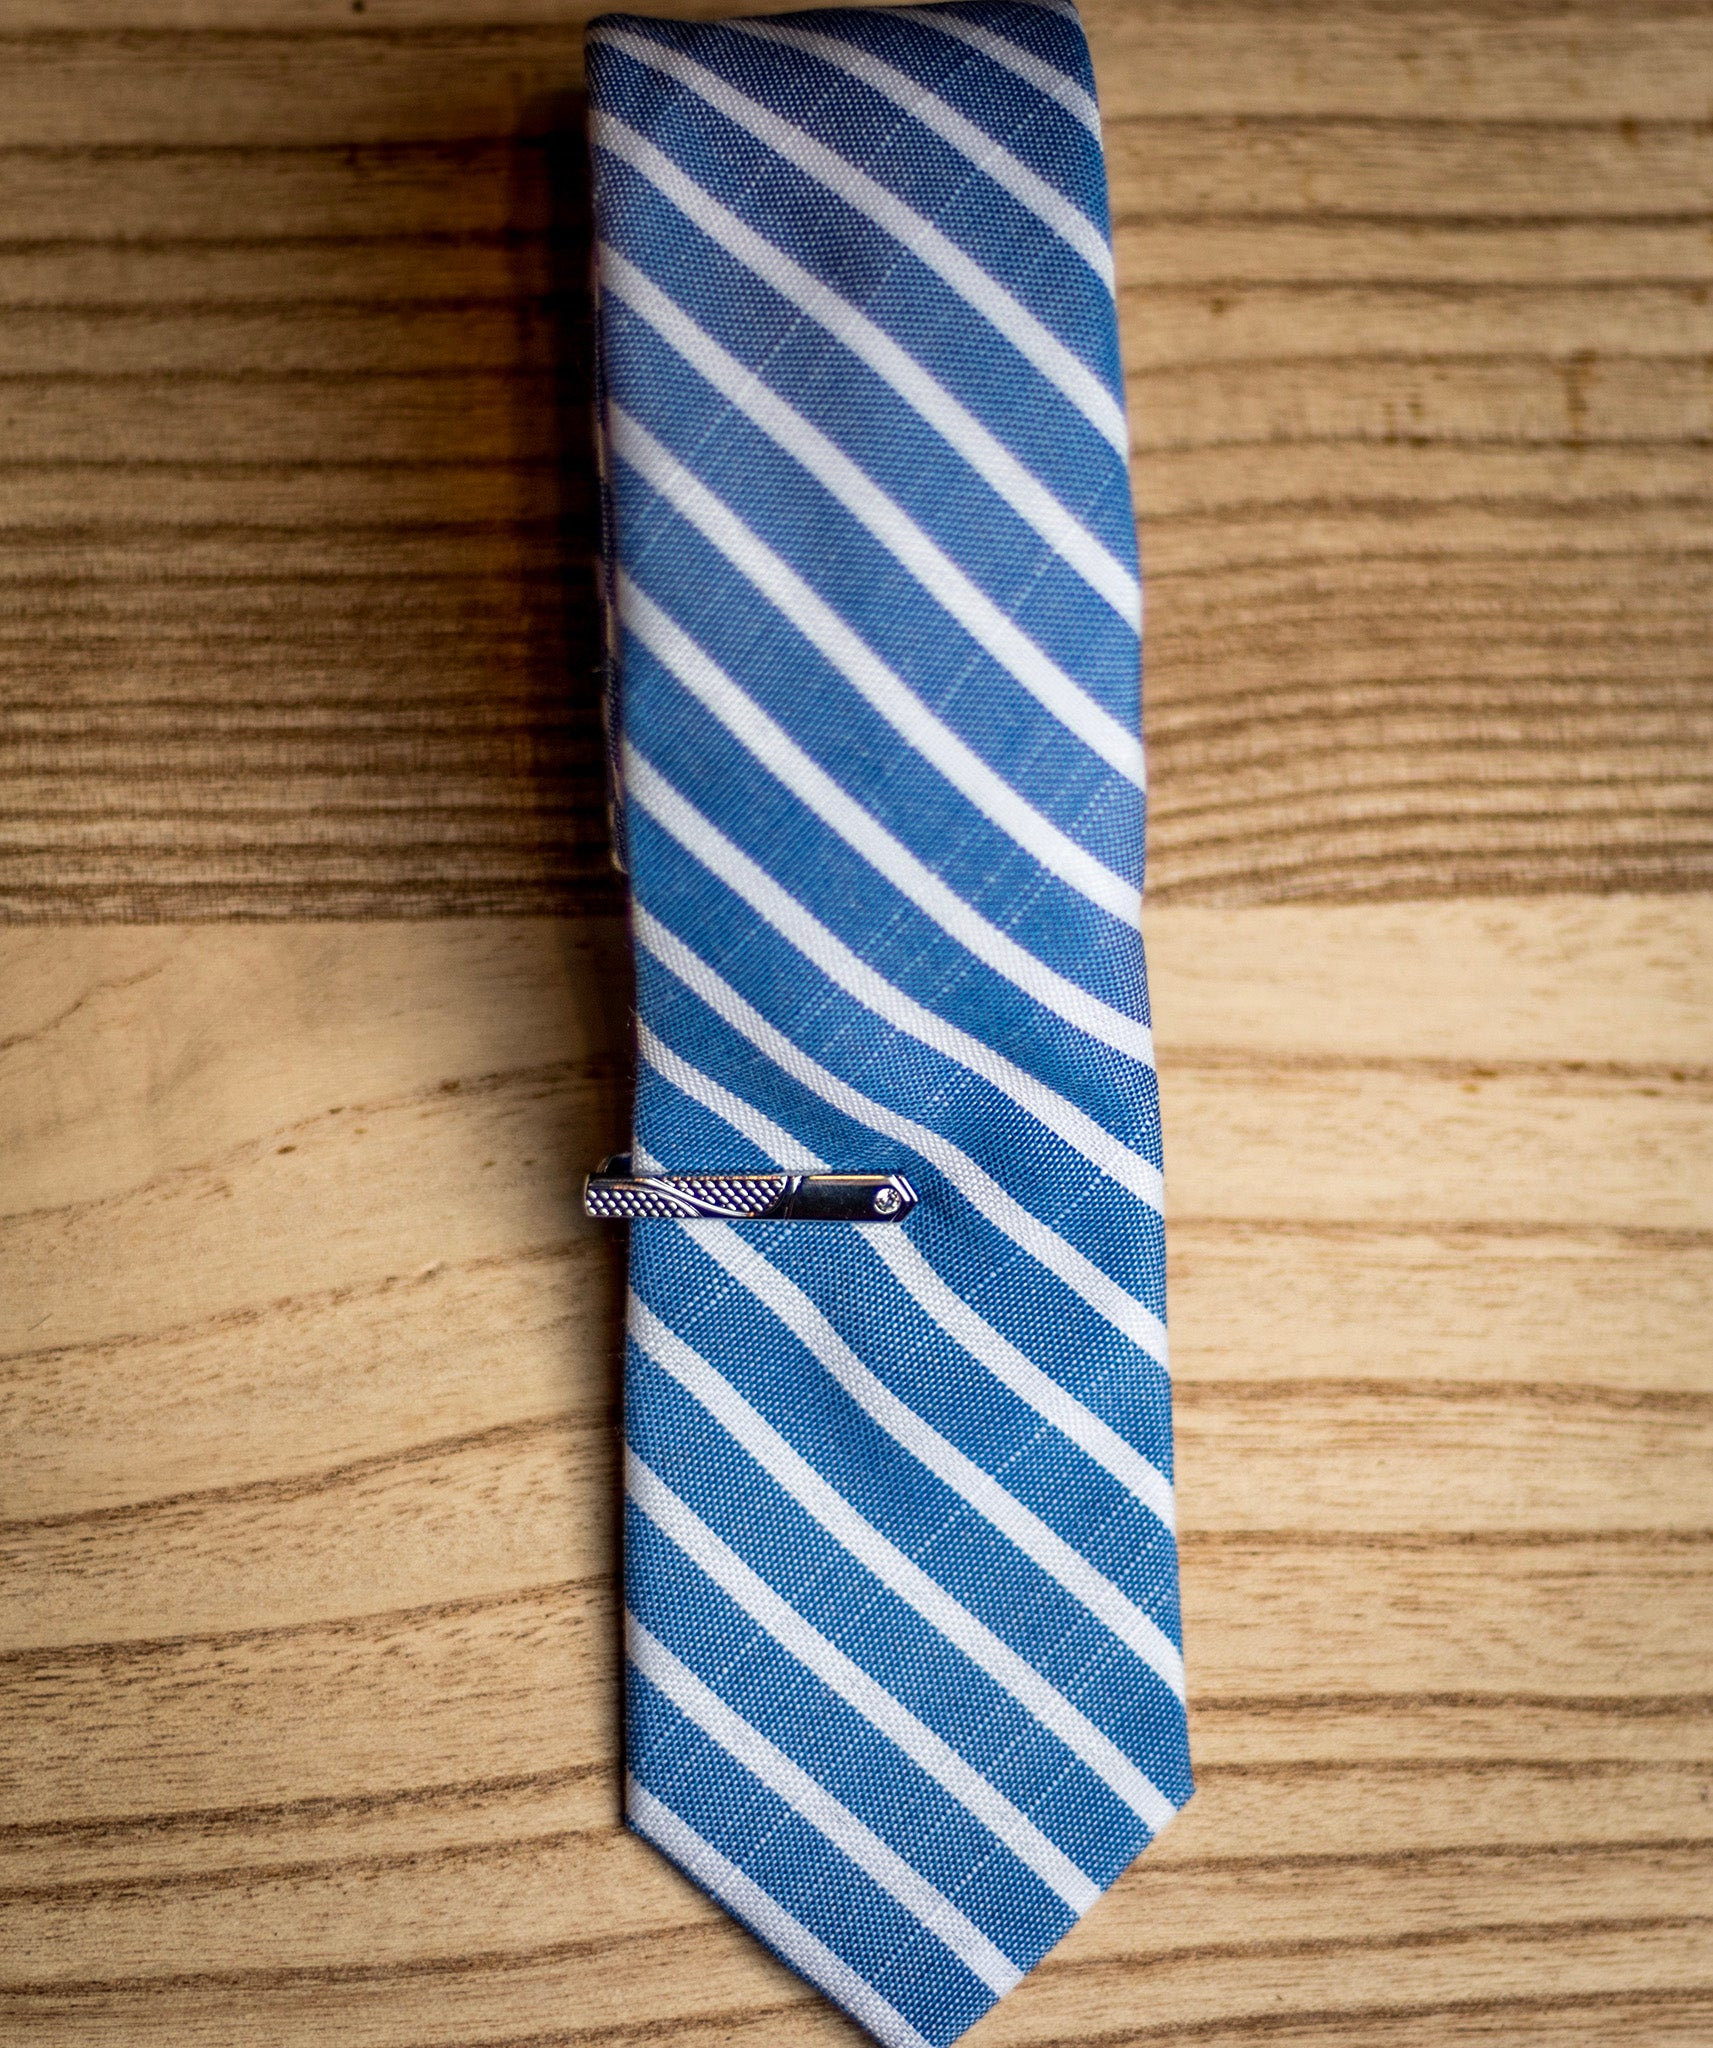 Blue cotton skinny tie with matte finish tie clip.